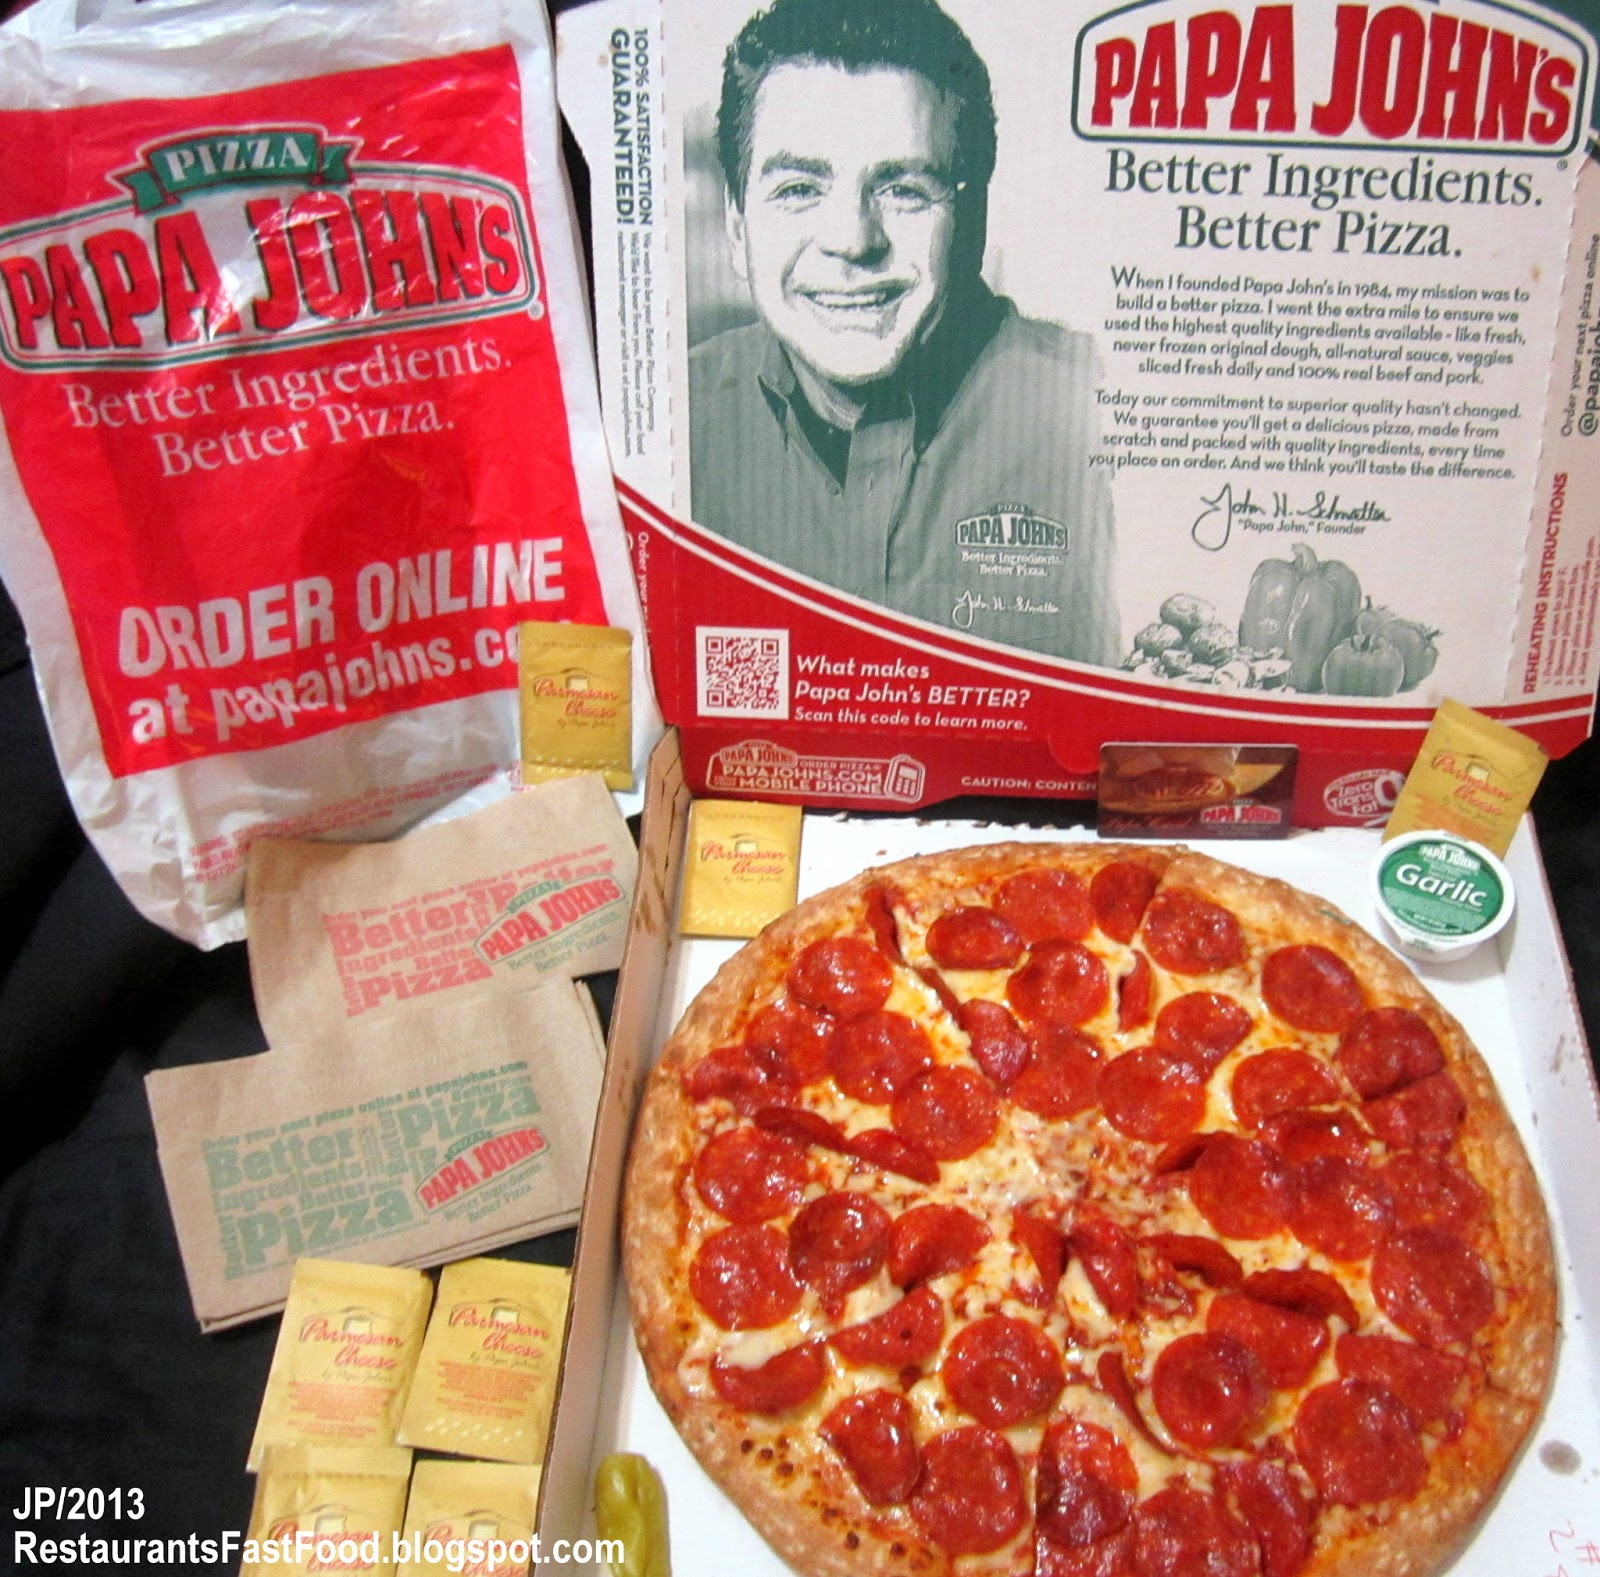 Are you looking for a fresh, quality pizza delivery at a great price? A better pizza, breadsticks, wings, desserts and much more available for delivery or carryout in Pasco, Kennewick, Richland & West Richland. Order online, call us or download our app to order today! We are a locally owned and operated Tri-Cities business. At Papa John's Pizza Tri-Cities we pride ourselves in better.